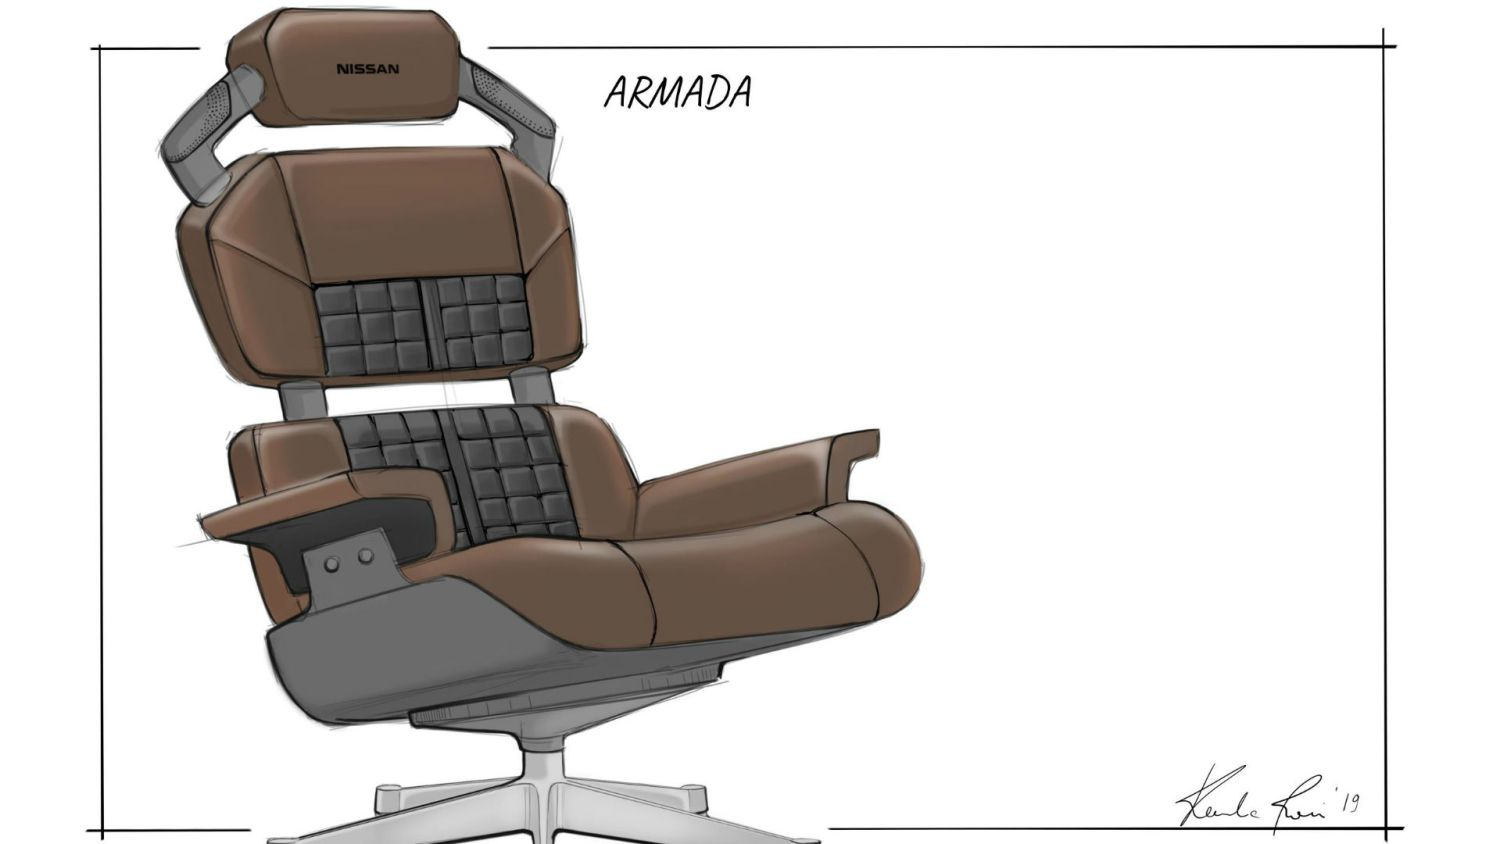 Nissan Armada gaming chair